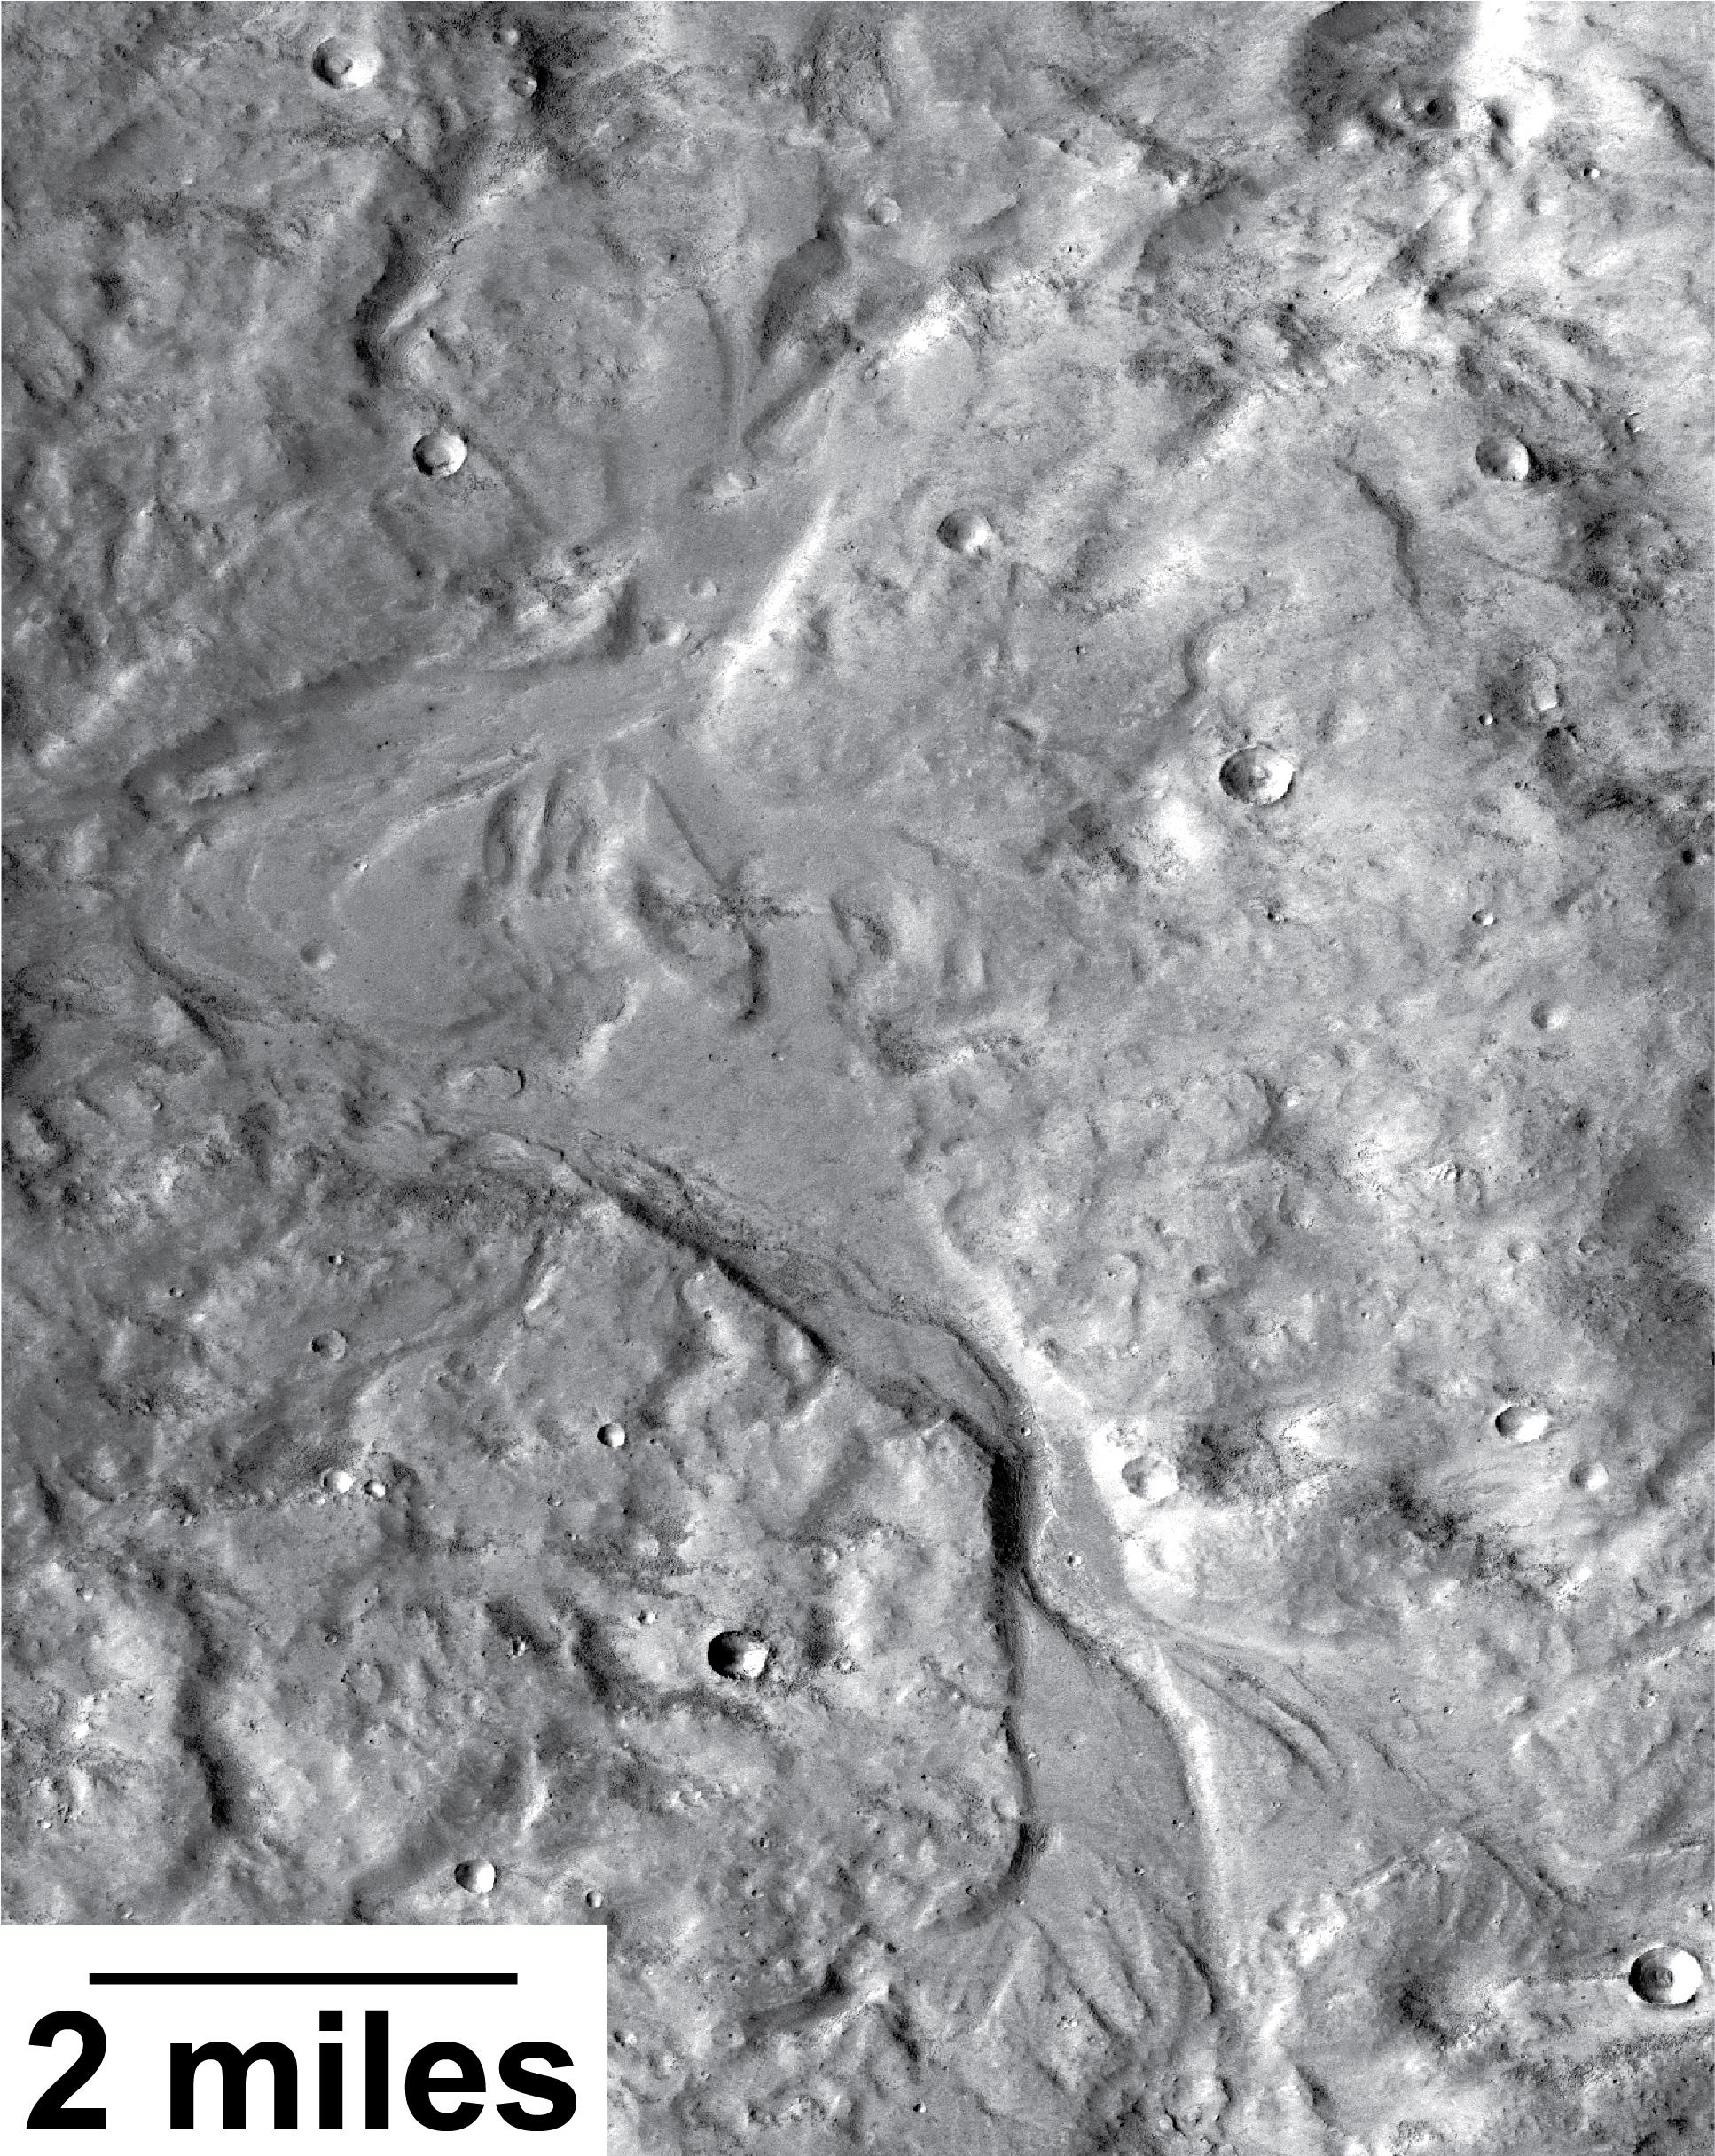 pia20837_pressimage1_valley